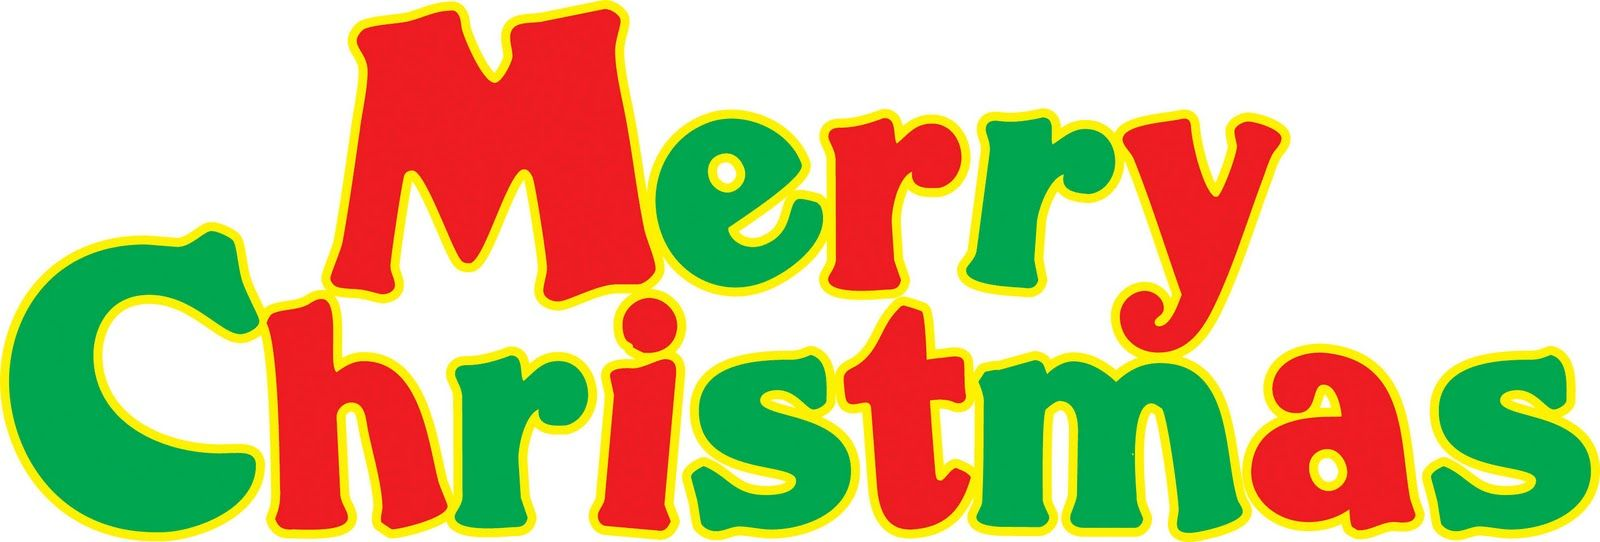 merry christmas clip art use these free images for your websites rh pinterest com merry christmas clip art images merry christmas clip art free